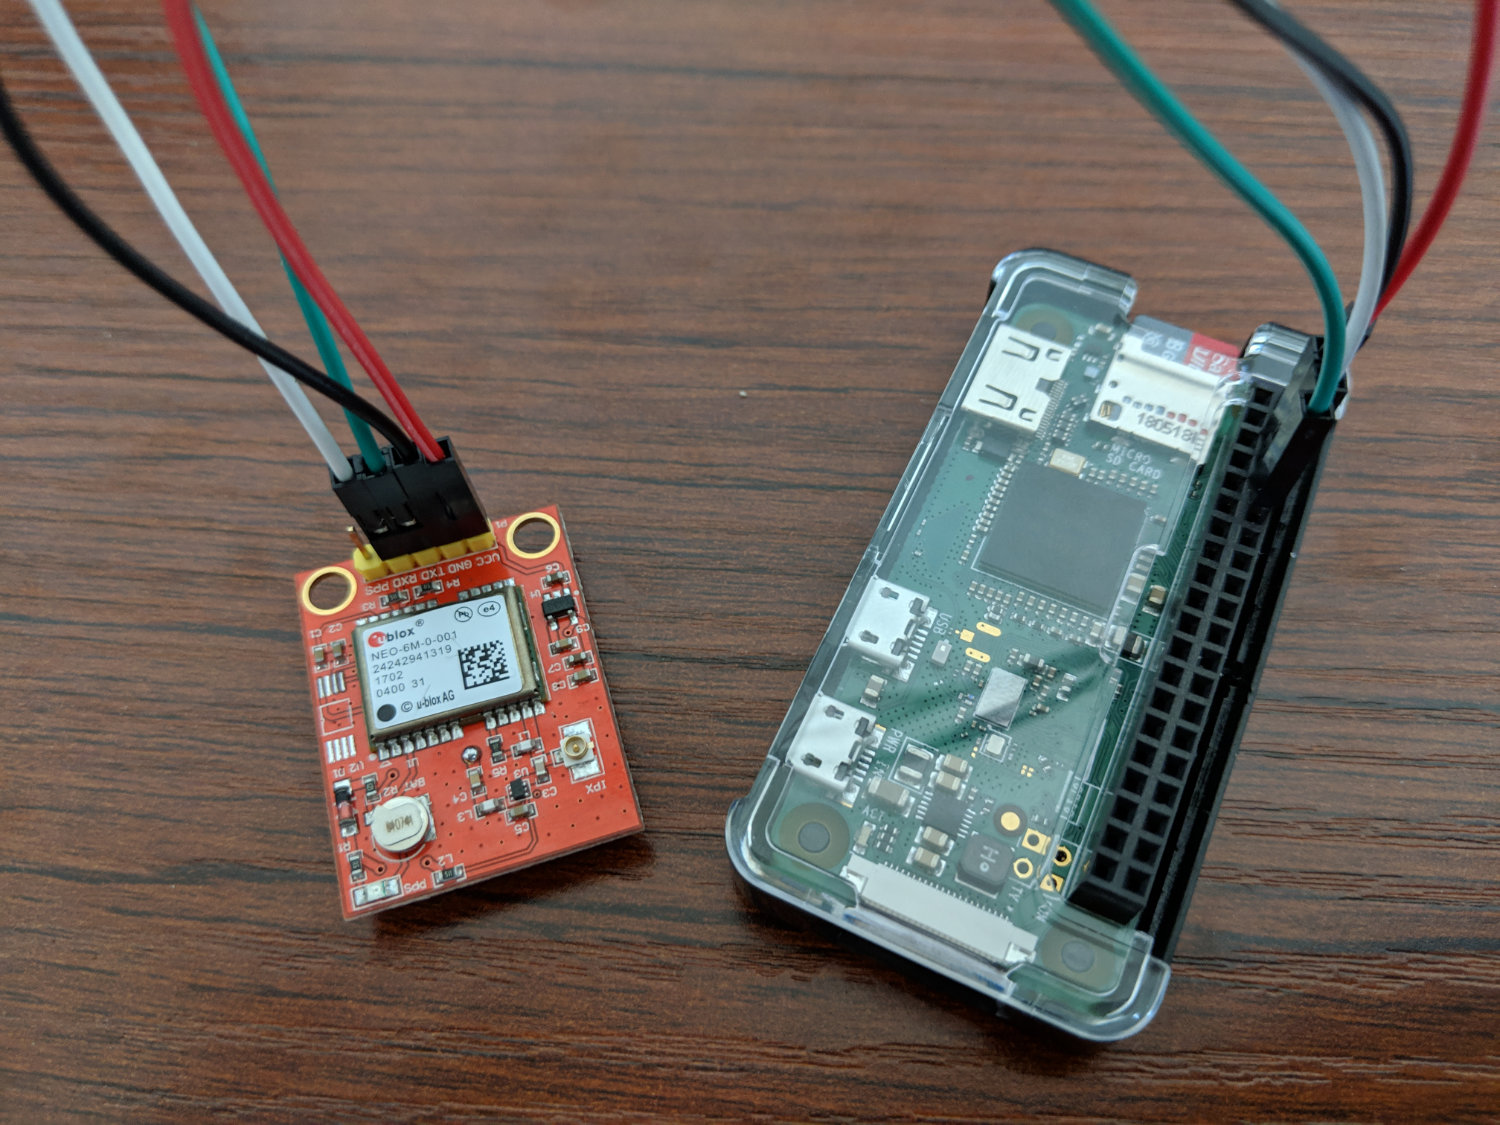 Read GPS Data With a Raspberry Pi Zero W and Node js - DZone IoT